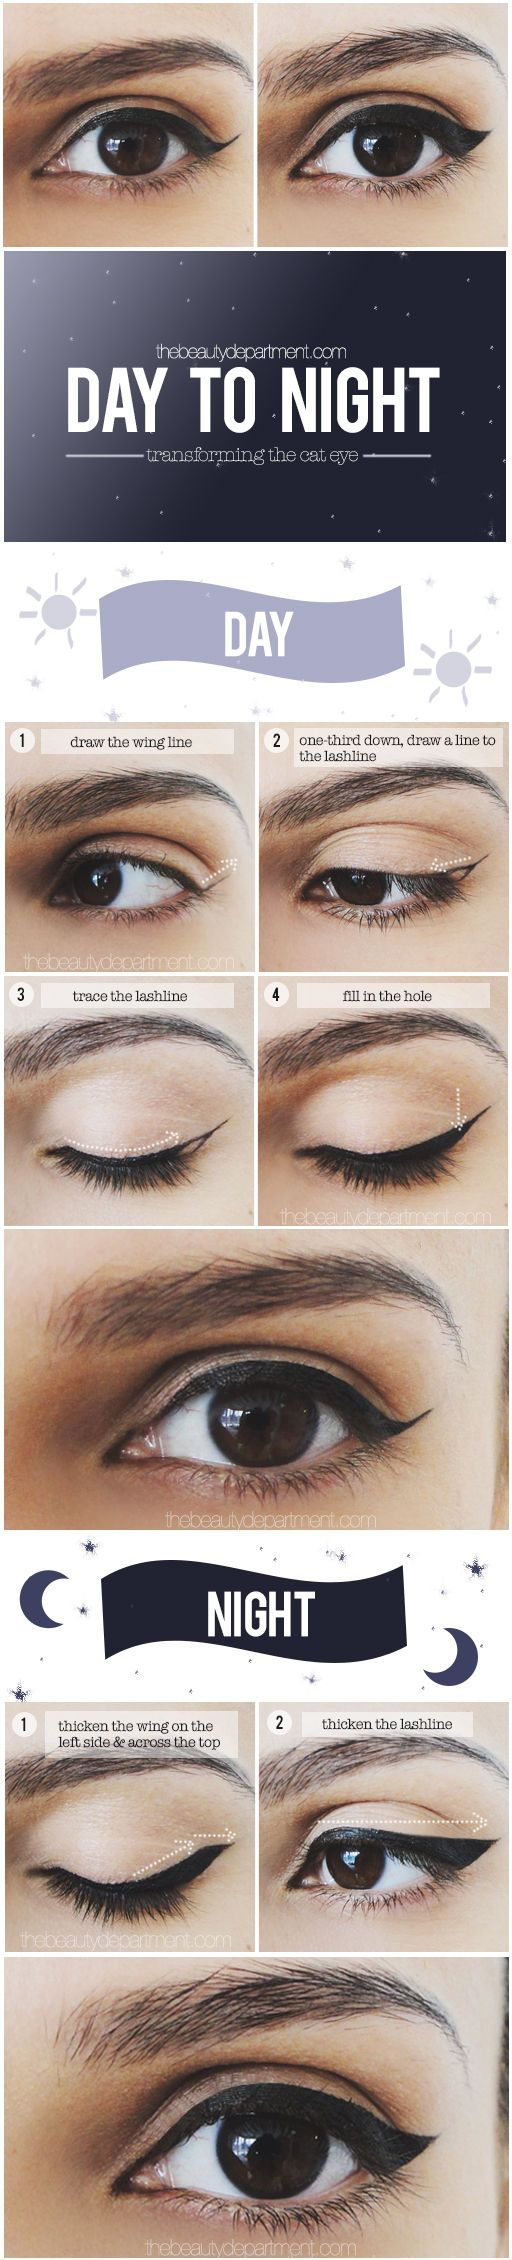 Day to Night Cat Eye Look